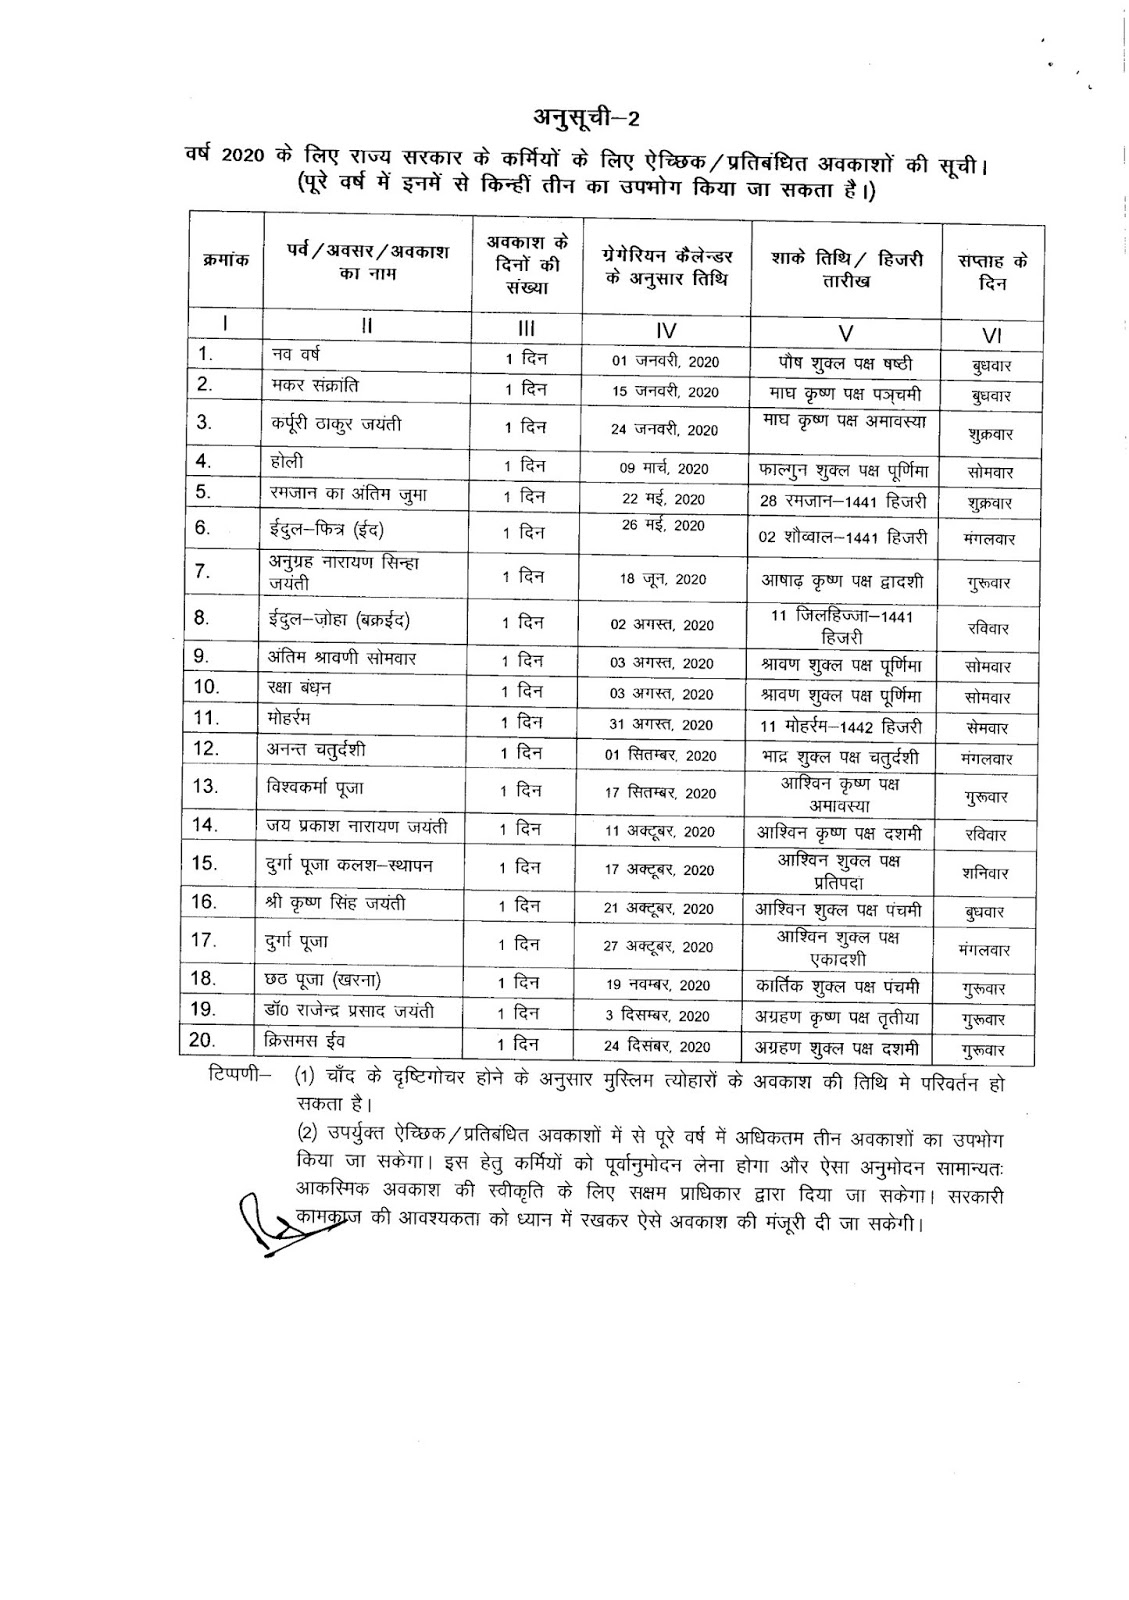 Bihar Government Calendar 2020 #educratsweb within Bihar Government Calendar